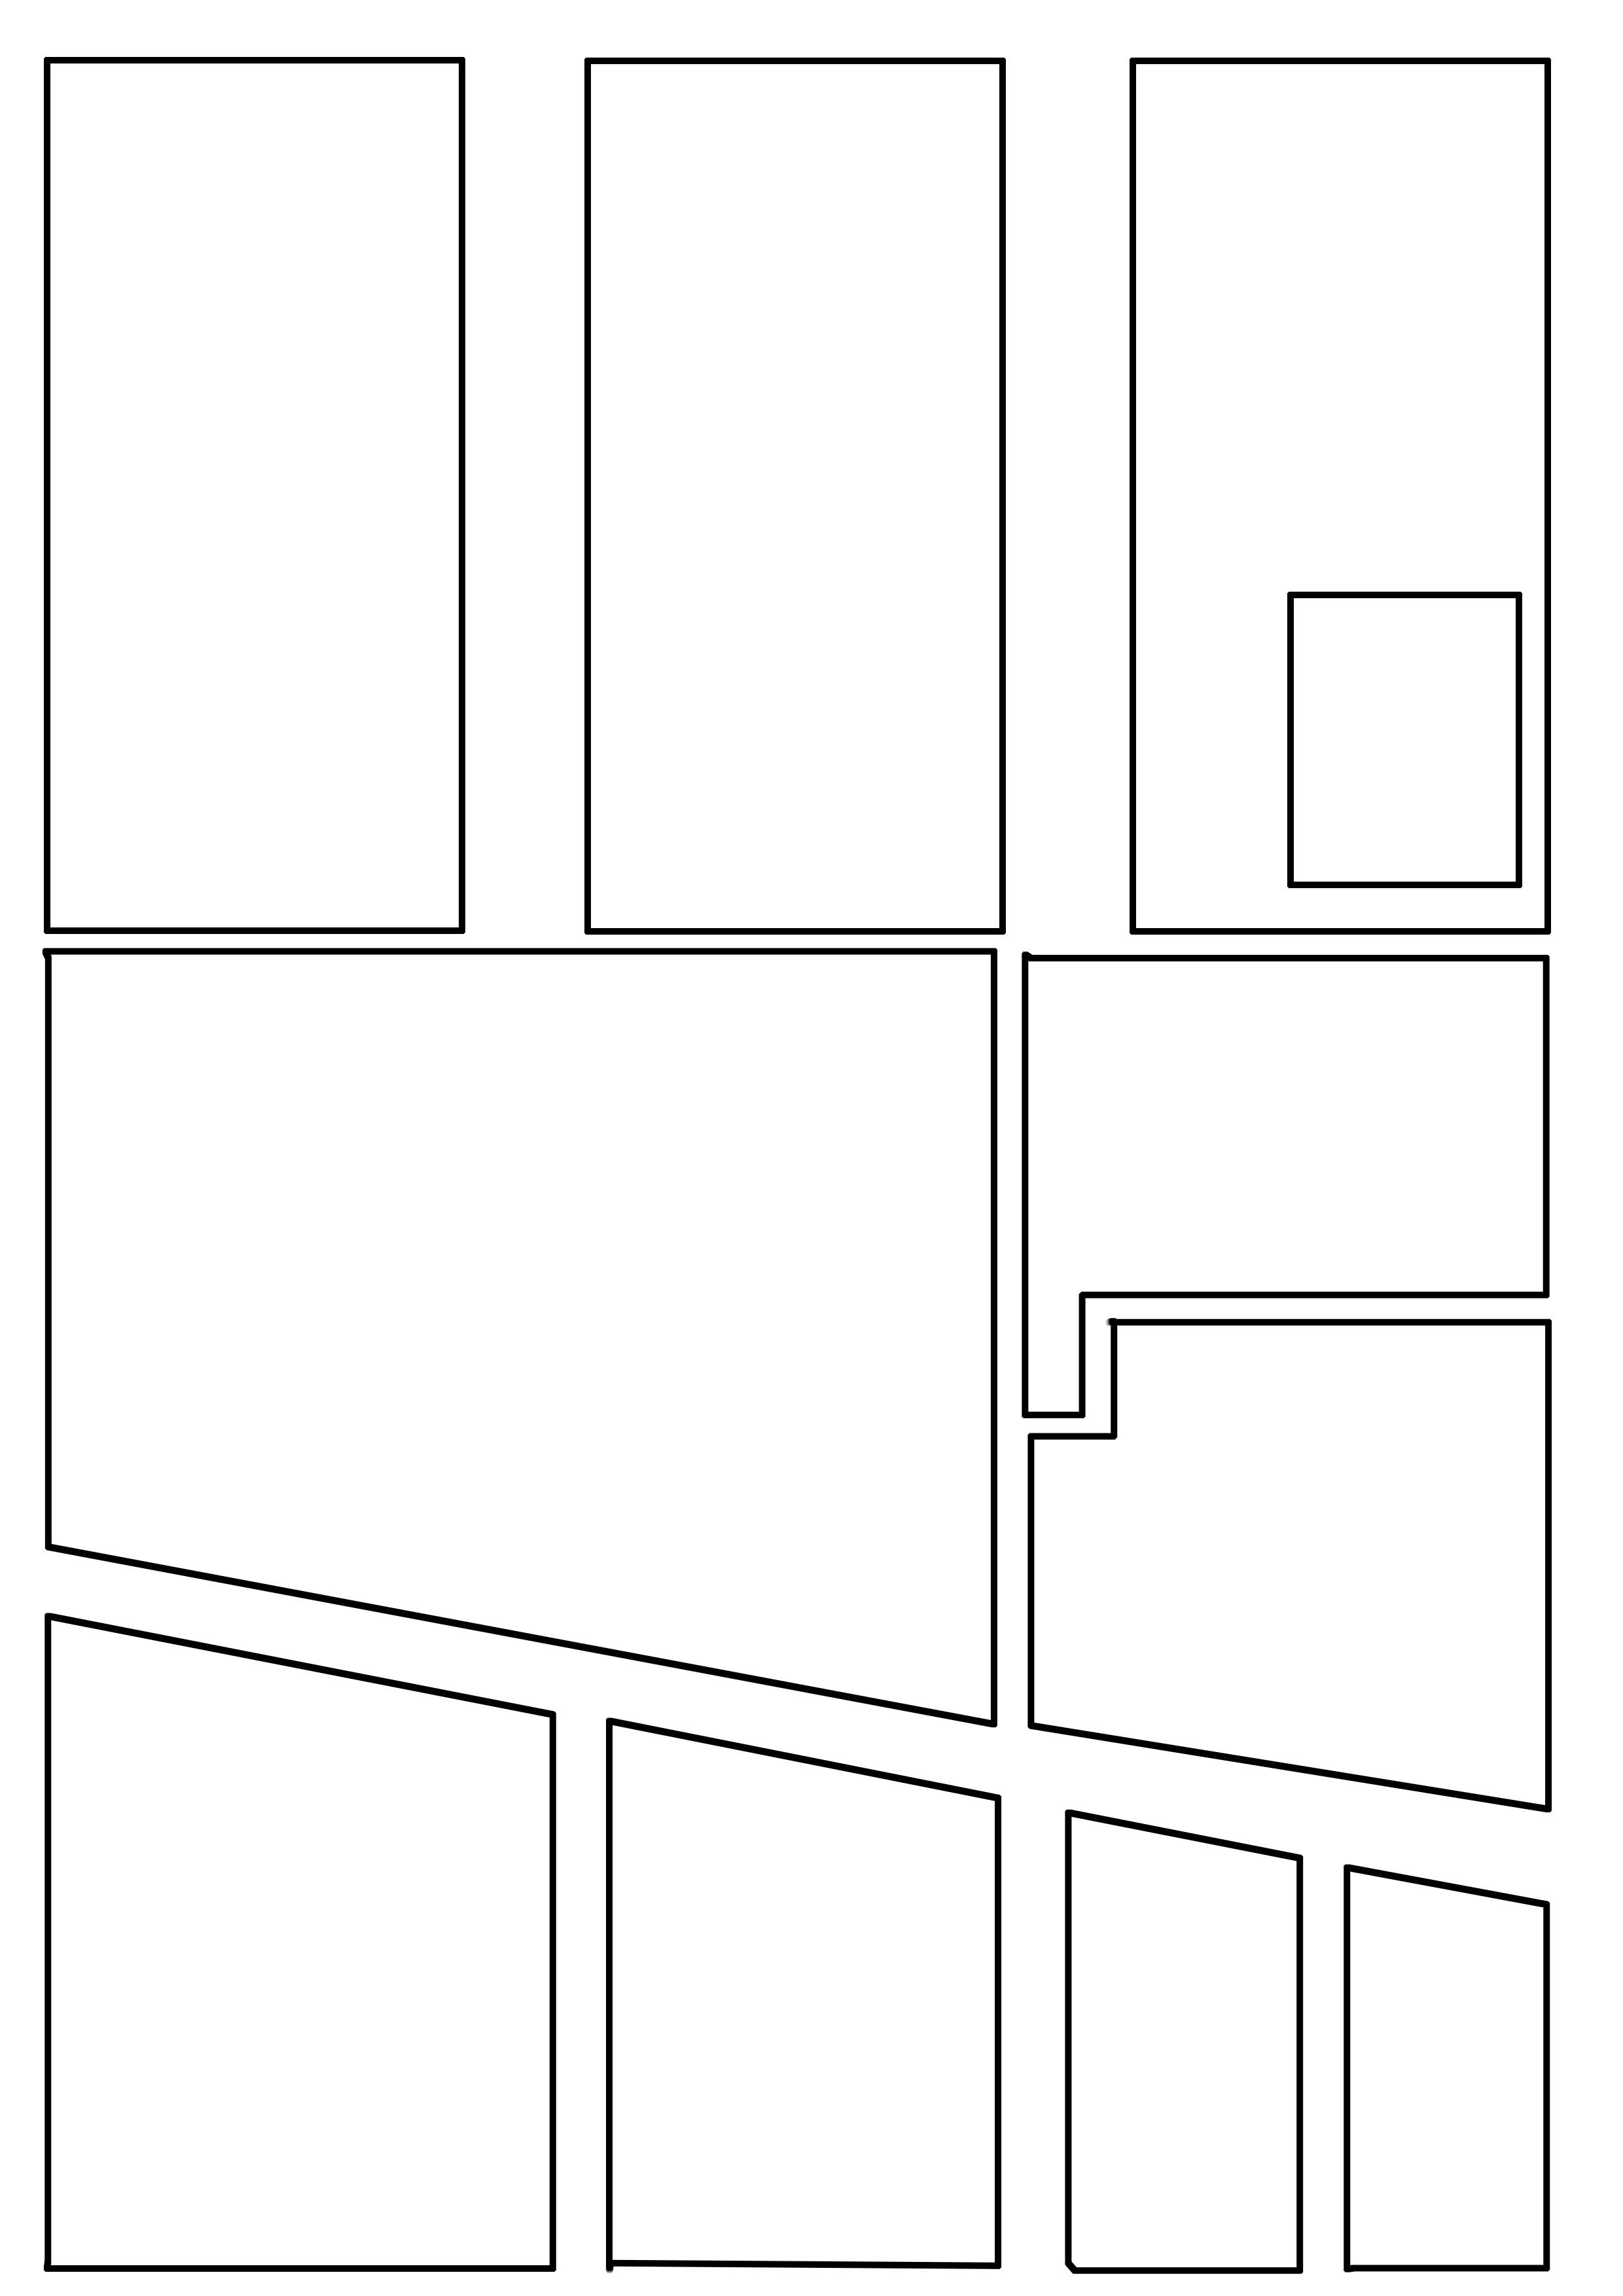 Comic Book Panel Template Ic Layout Experiments